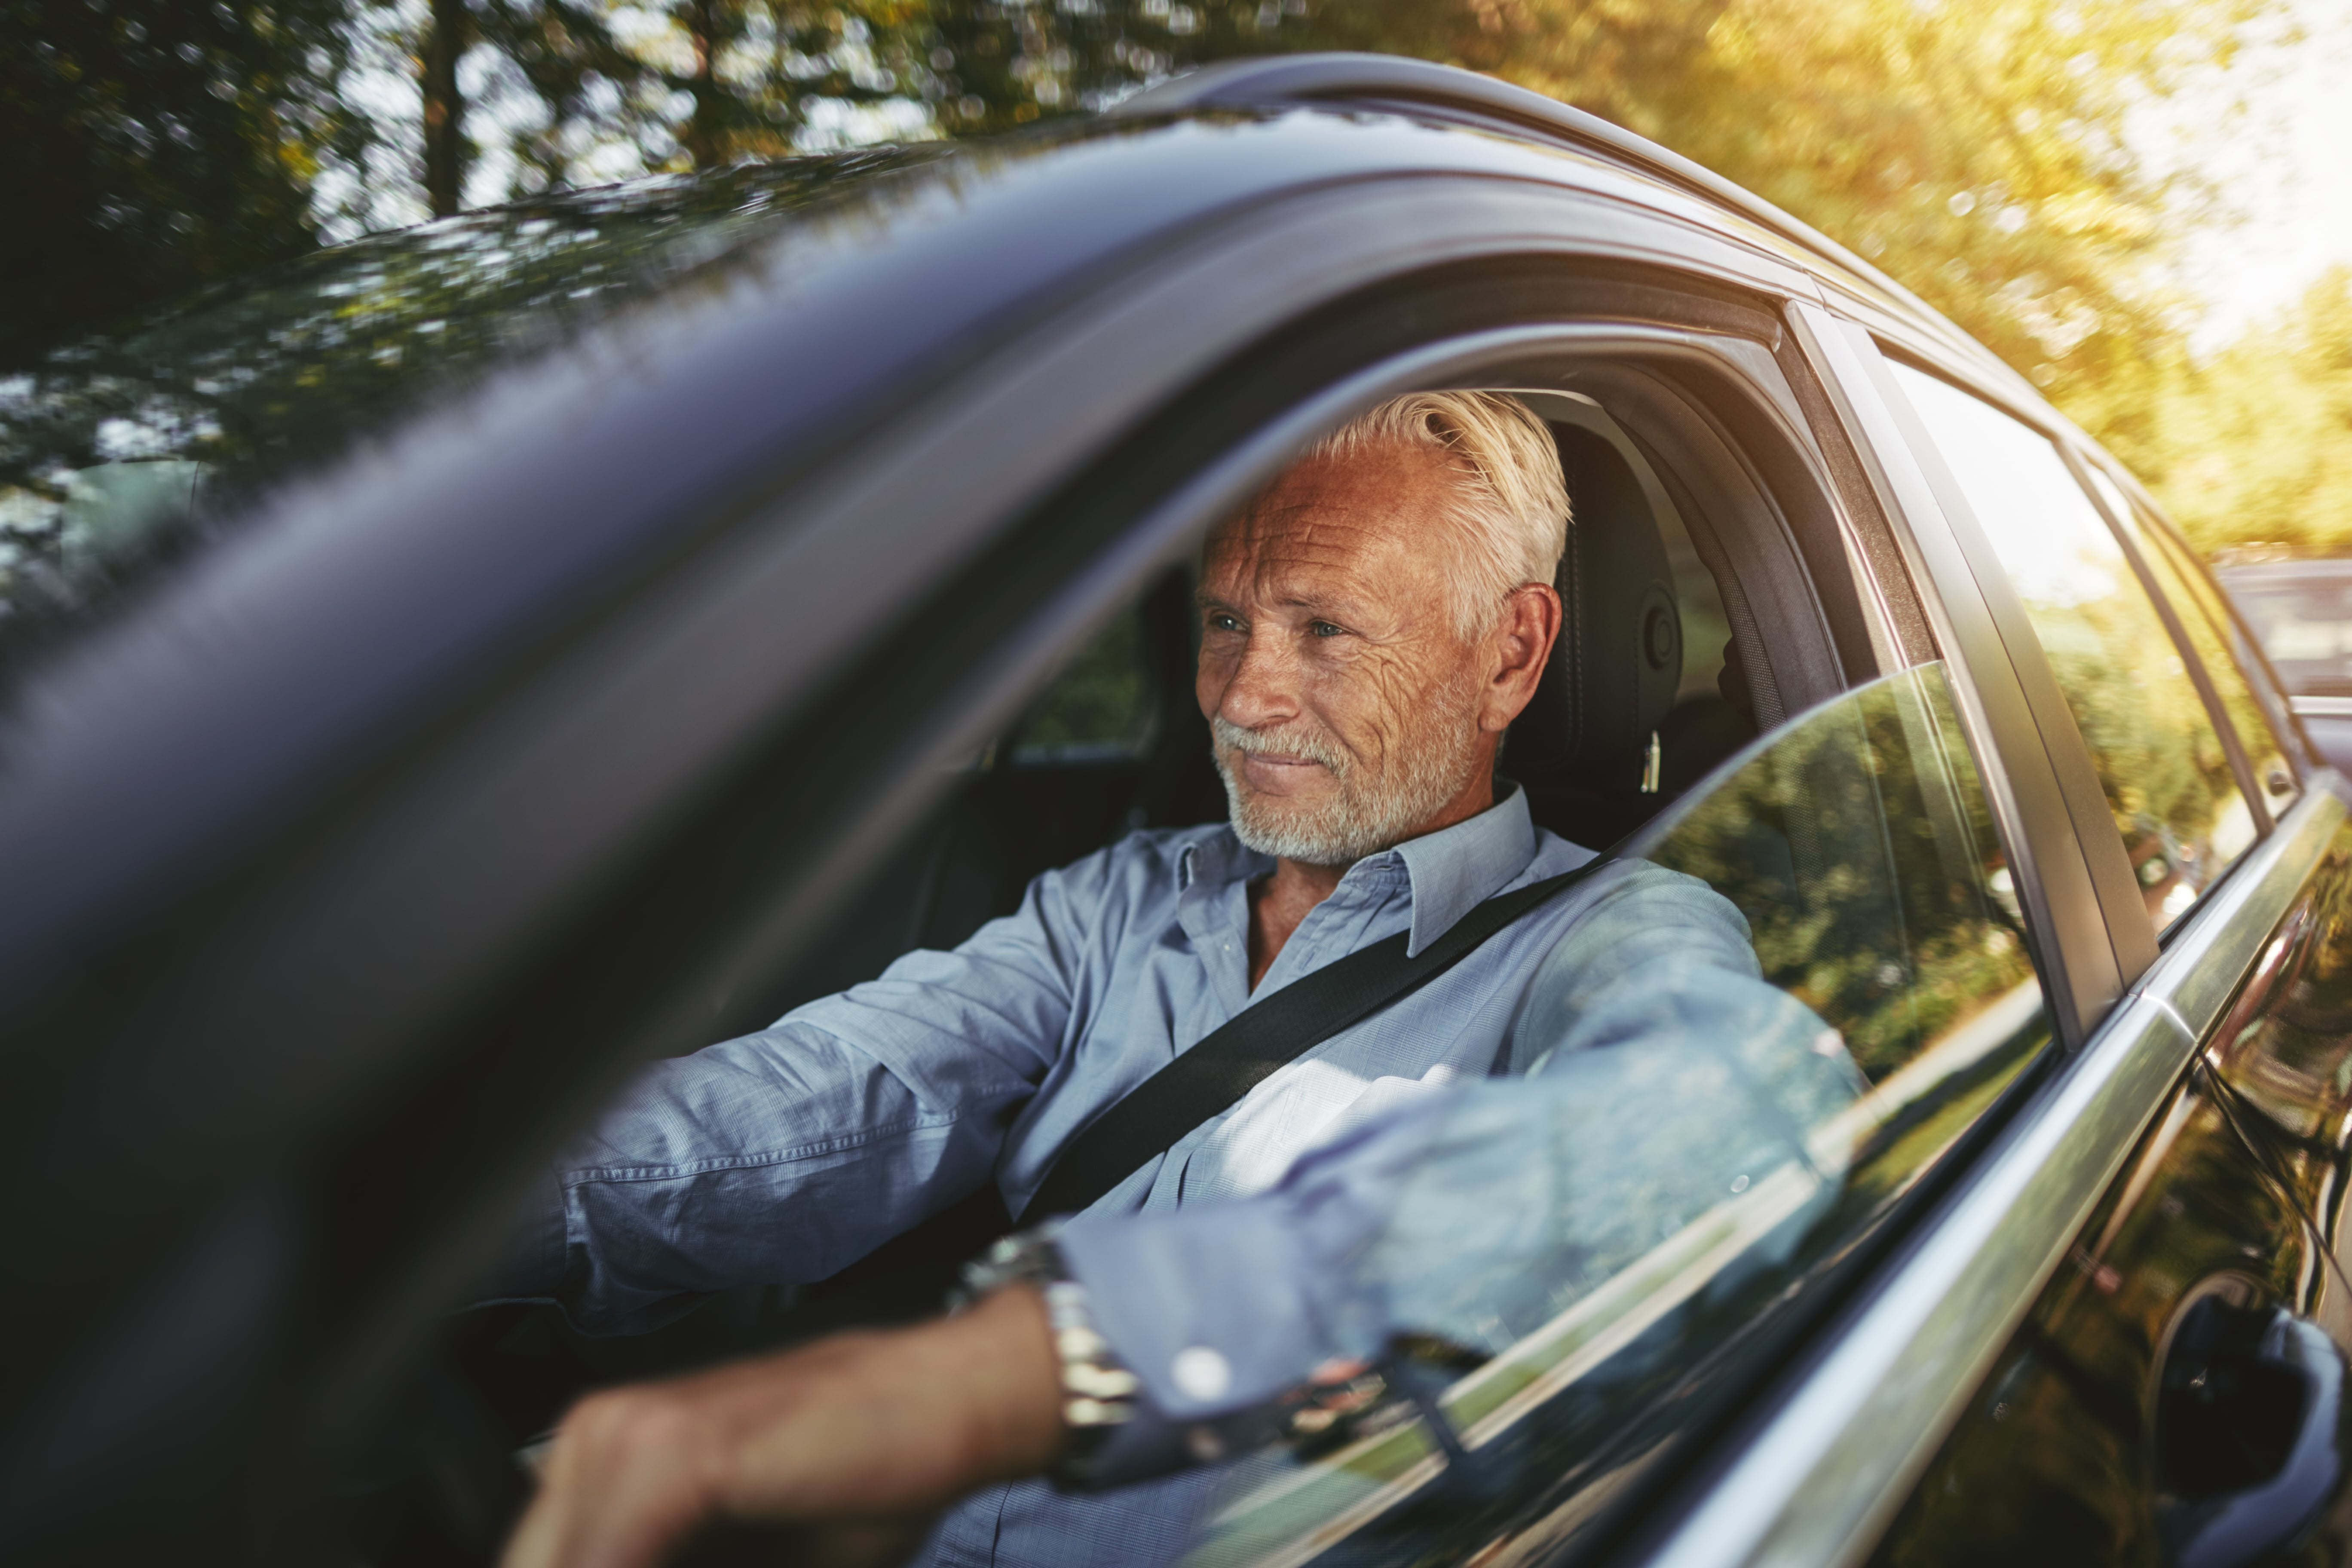 The effects of aging on driving